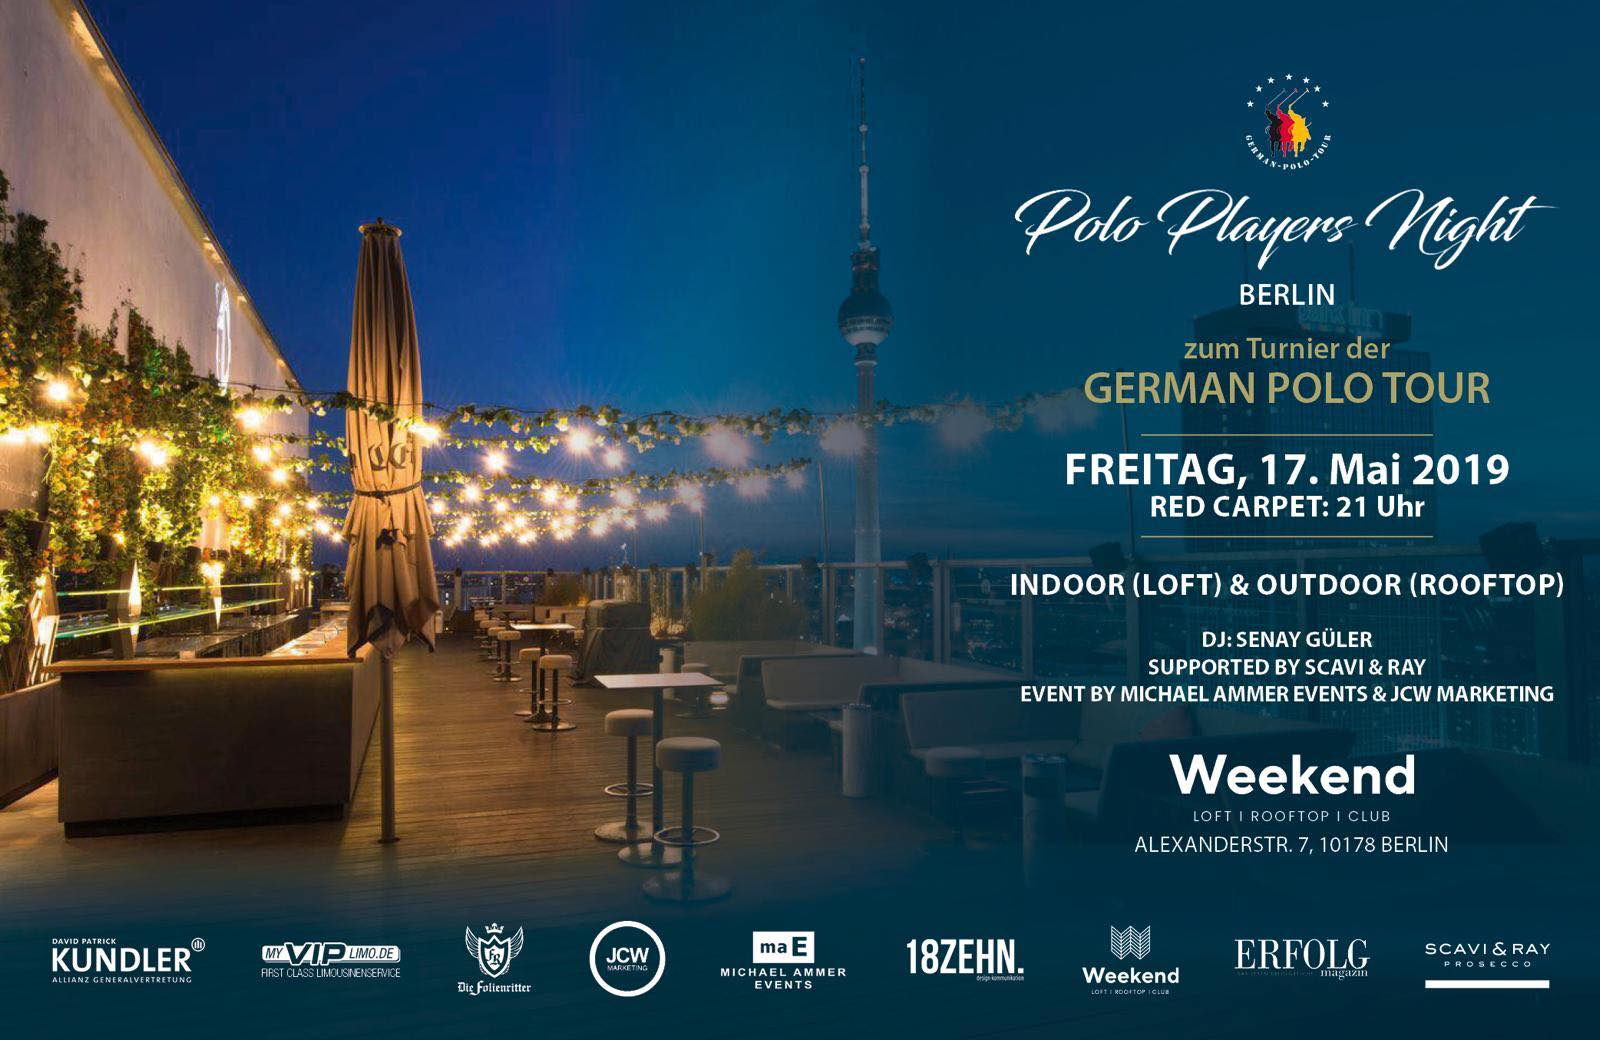 FLYER - POLO PLAYERS NIGHT BERLIN - 17.05.19 - quer